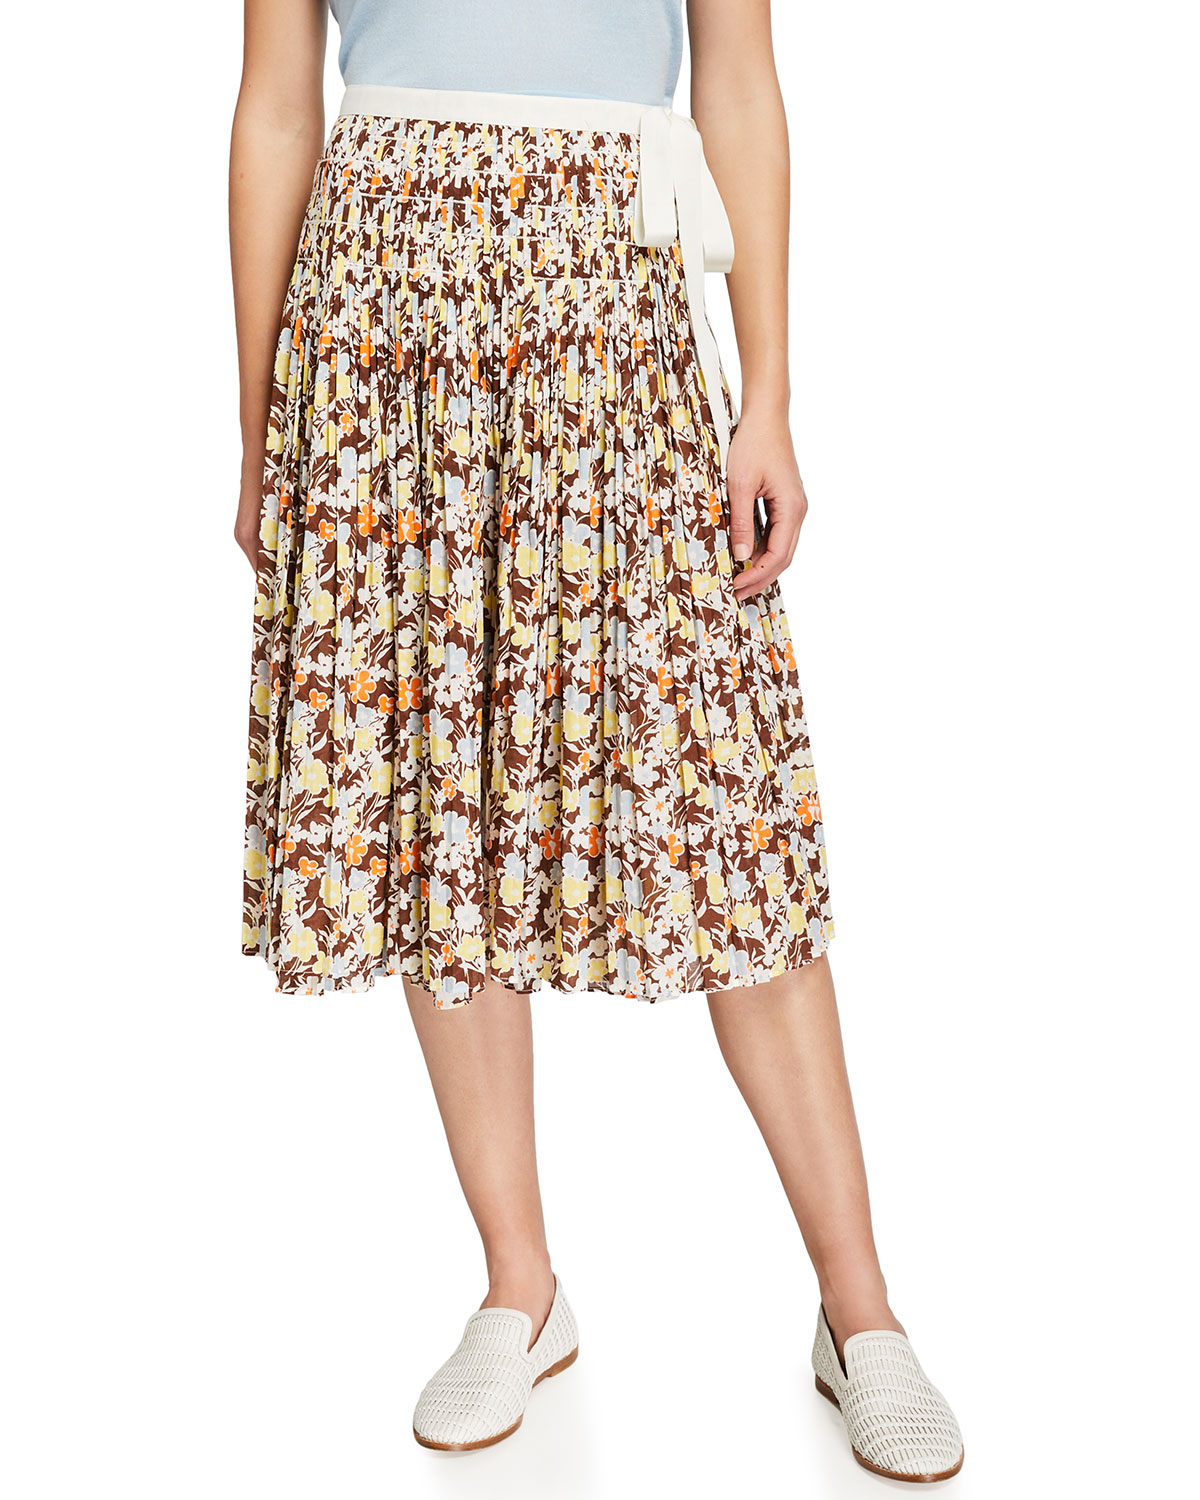 Tory Burch Cottons PLEATED TIE WRAP VOILE SKIRT